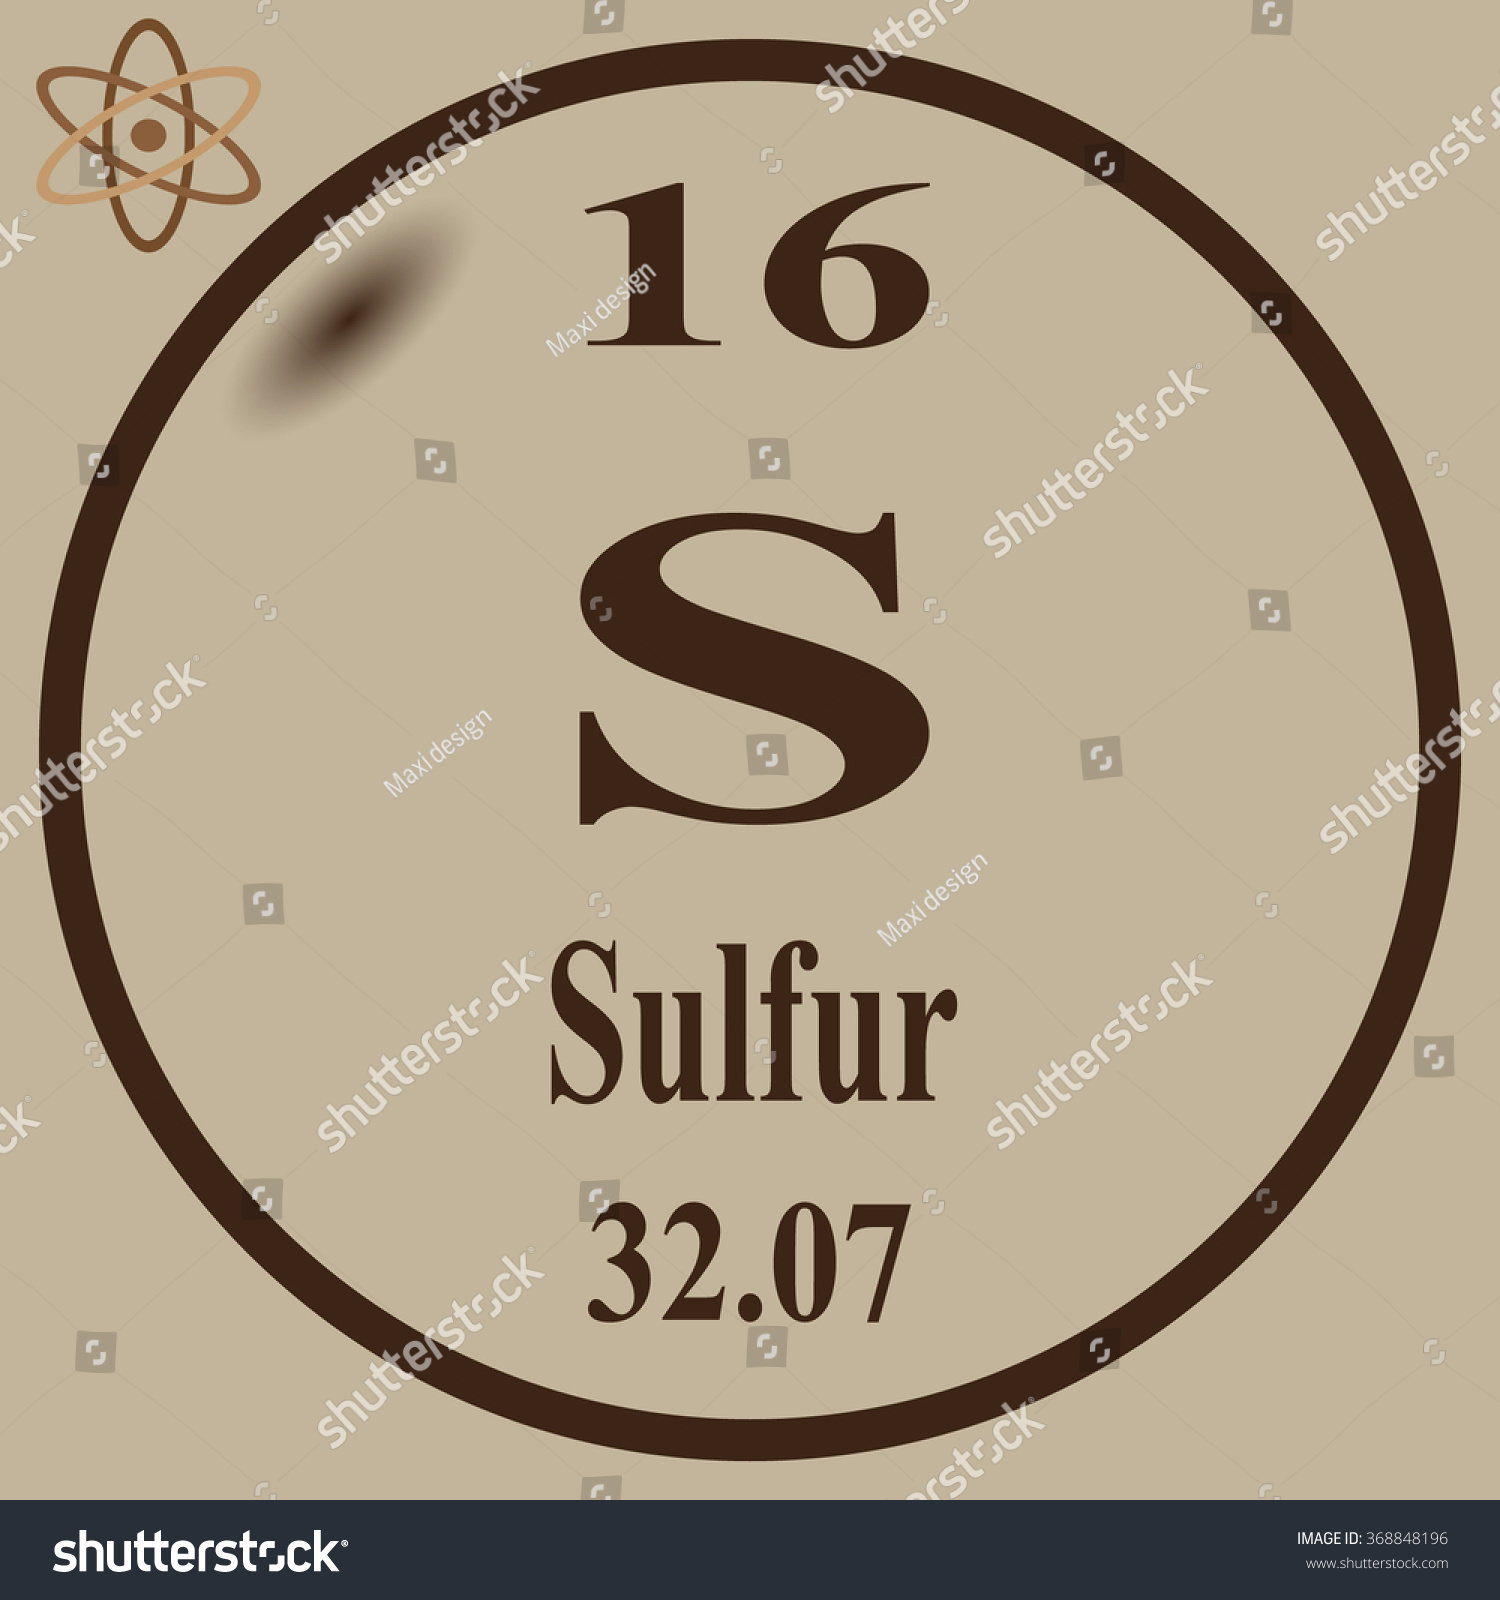 Periodic table of elements sulfur images periodic table images periodic table elements sulfur stock vector 368848196 shutterstock periodic table of elements sulfur gamestrikefo images gamestrikefo Image collections